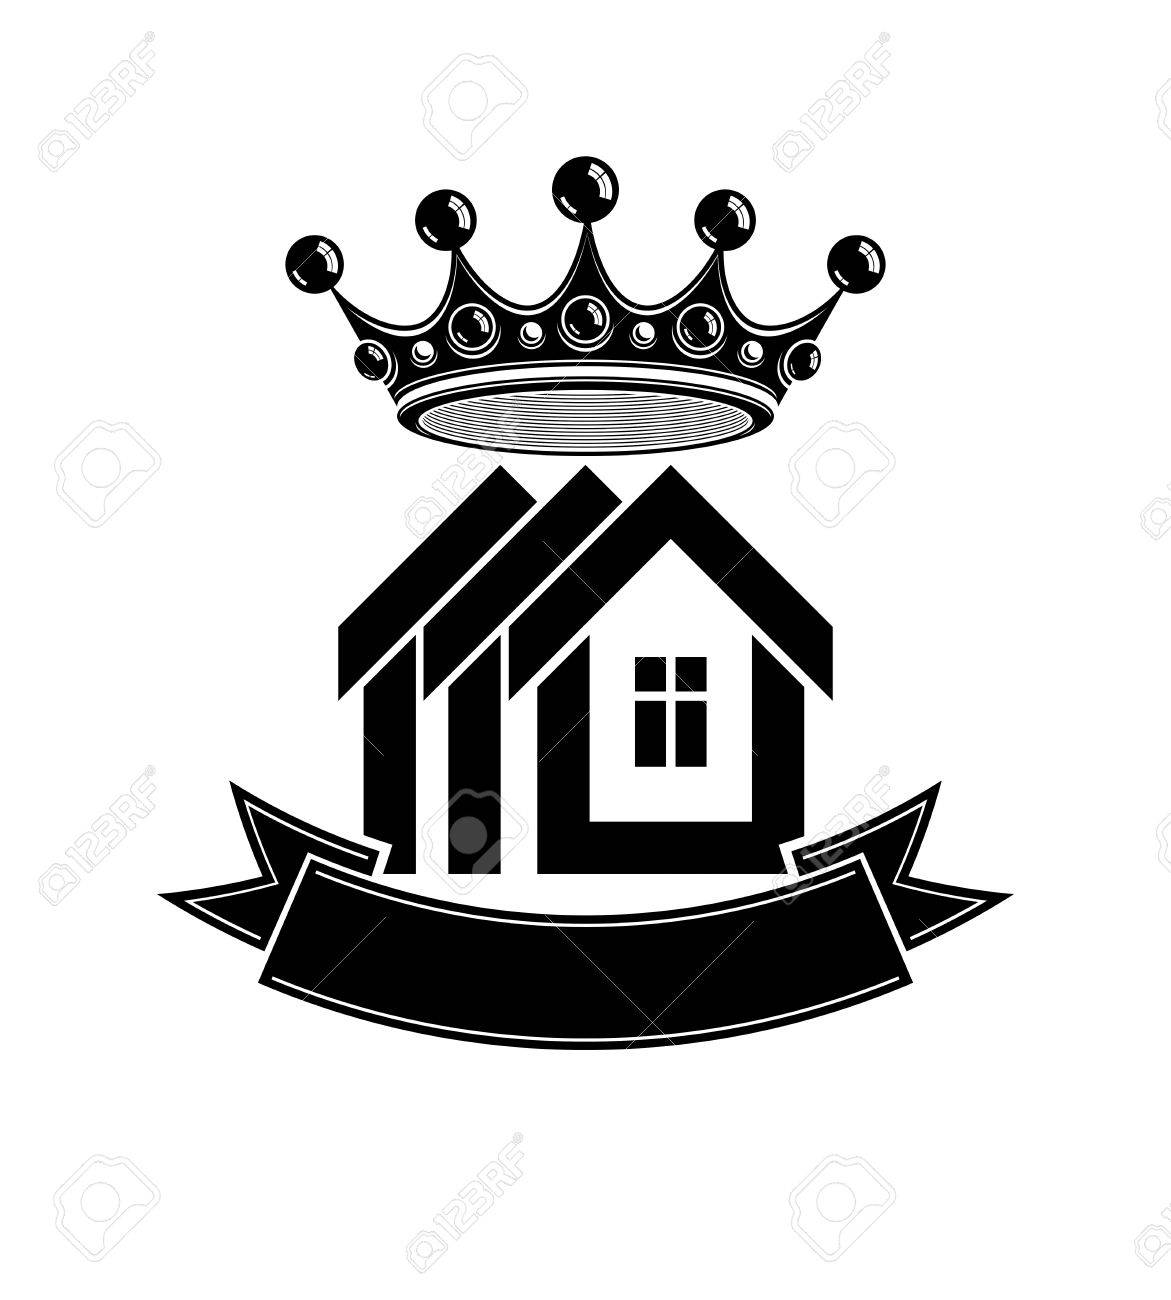 1171x1300 Imperial Coat Of Arms, Royal House Vector Conceptual Symbol